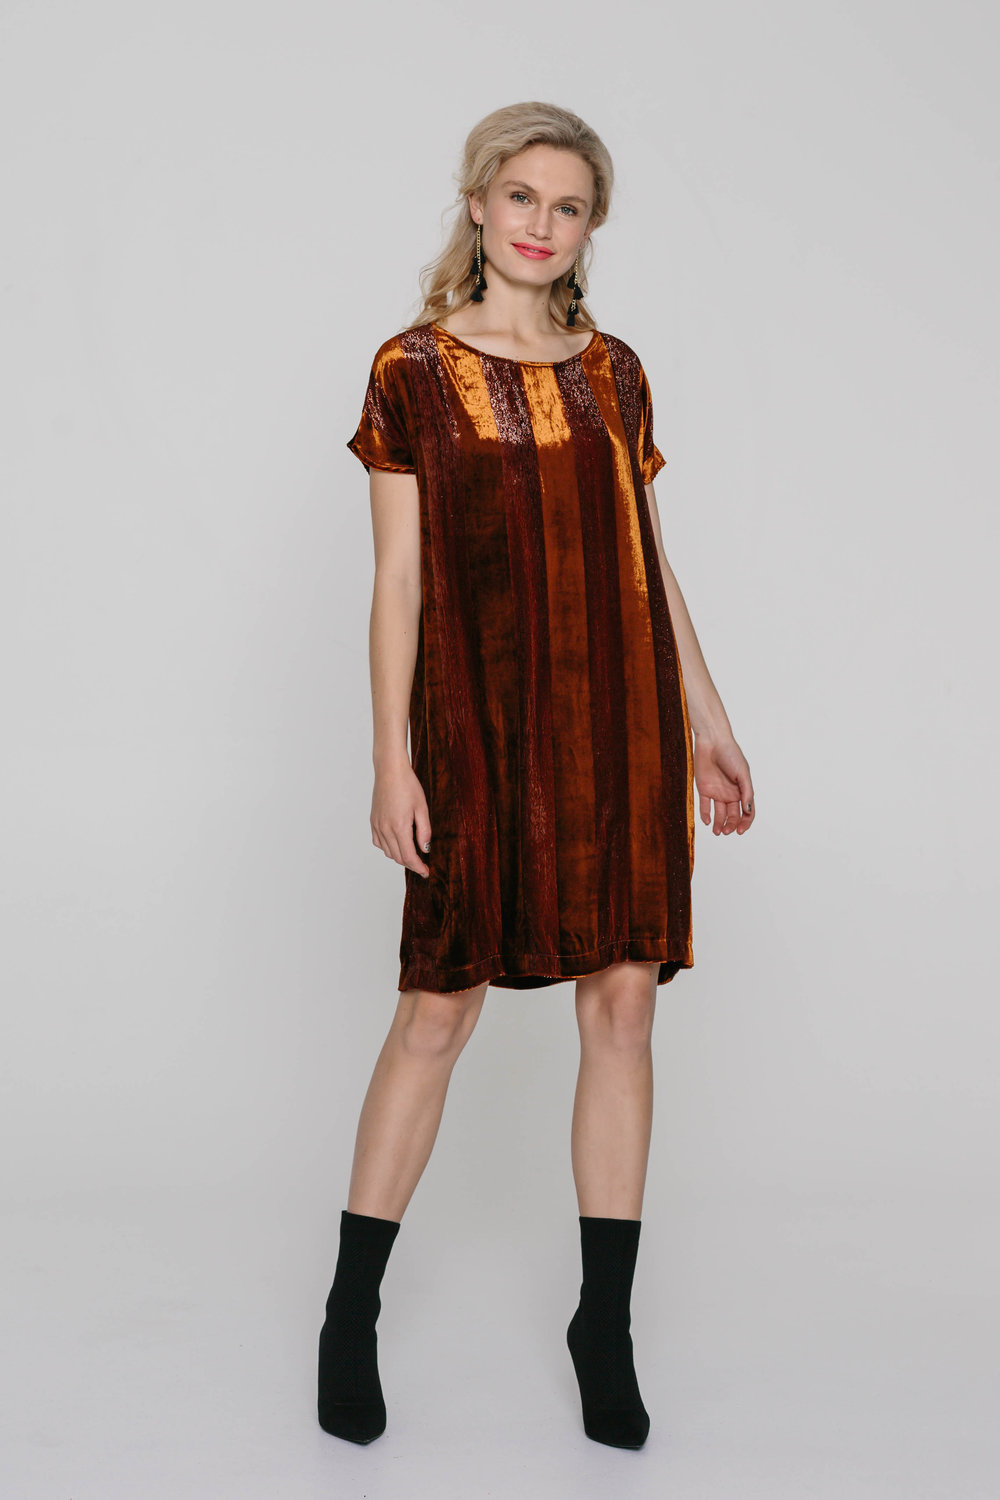 5474WA The Dress Velvet Rust